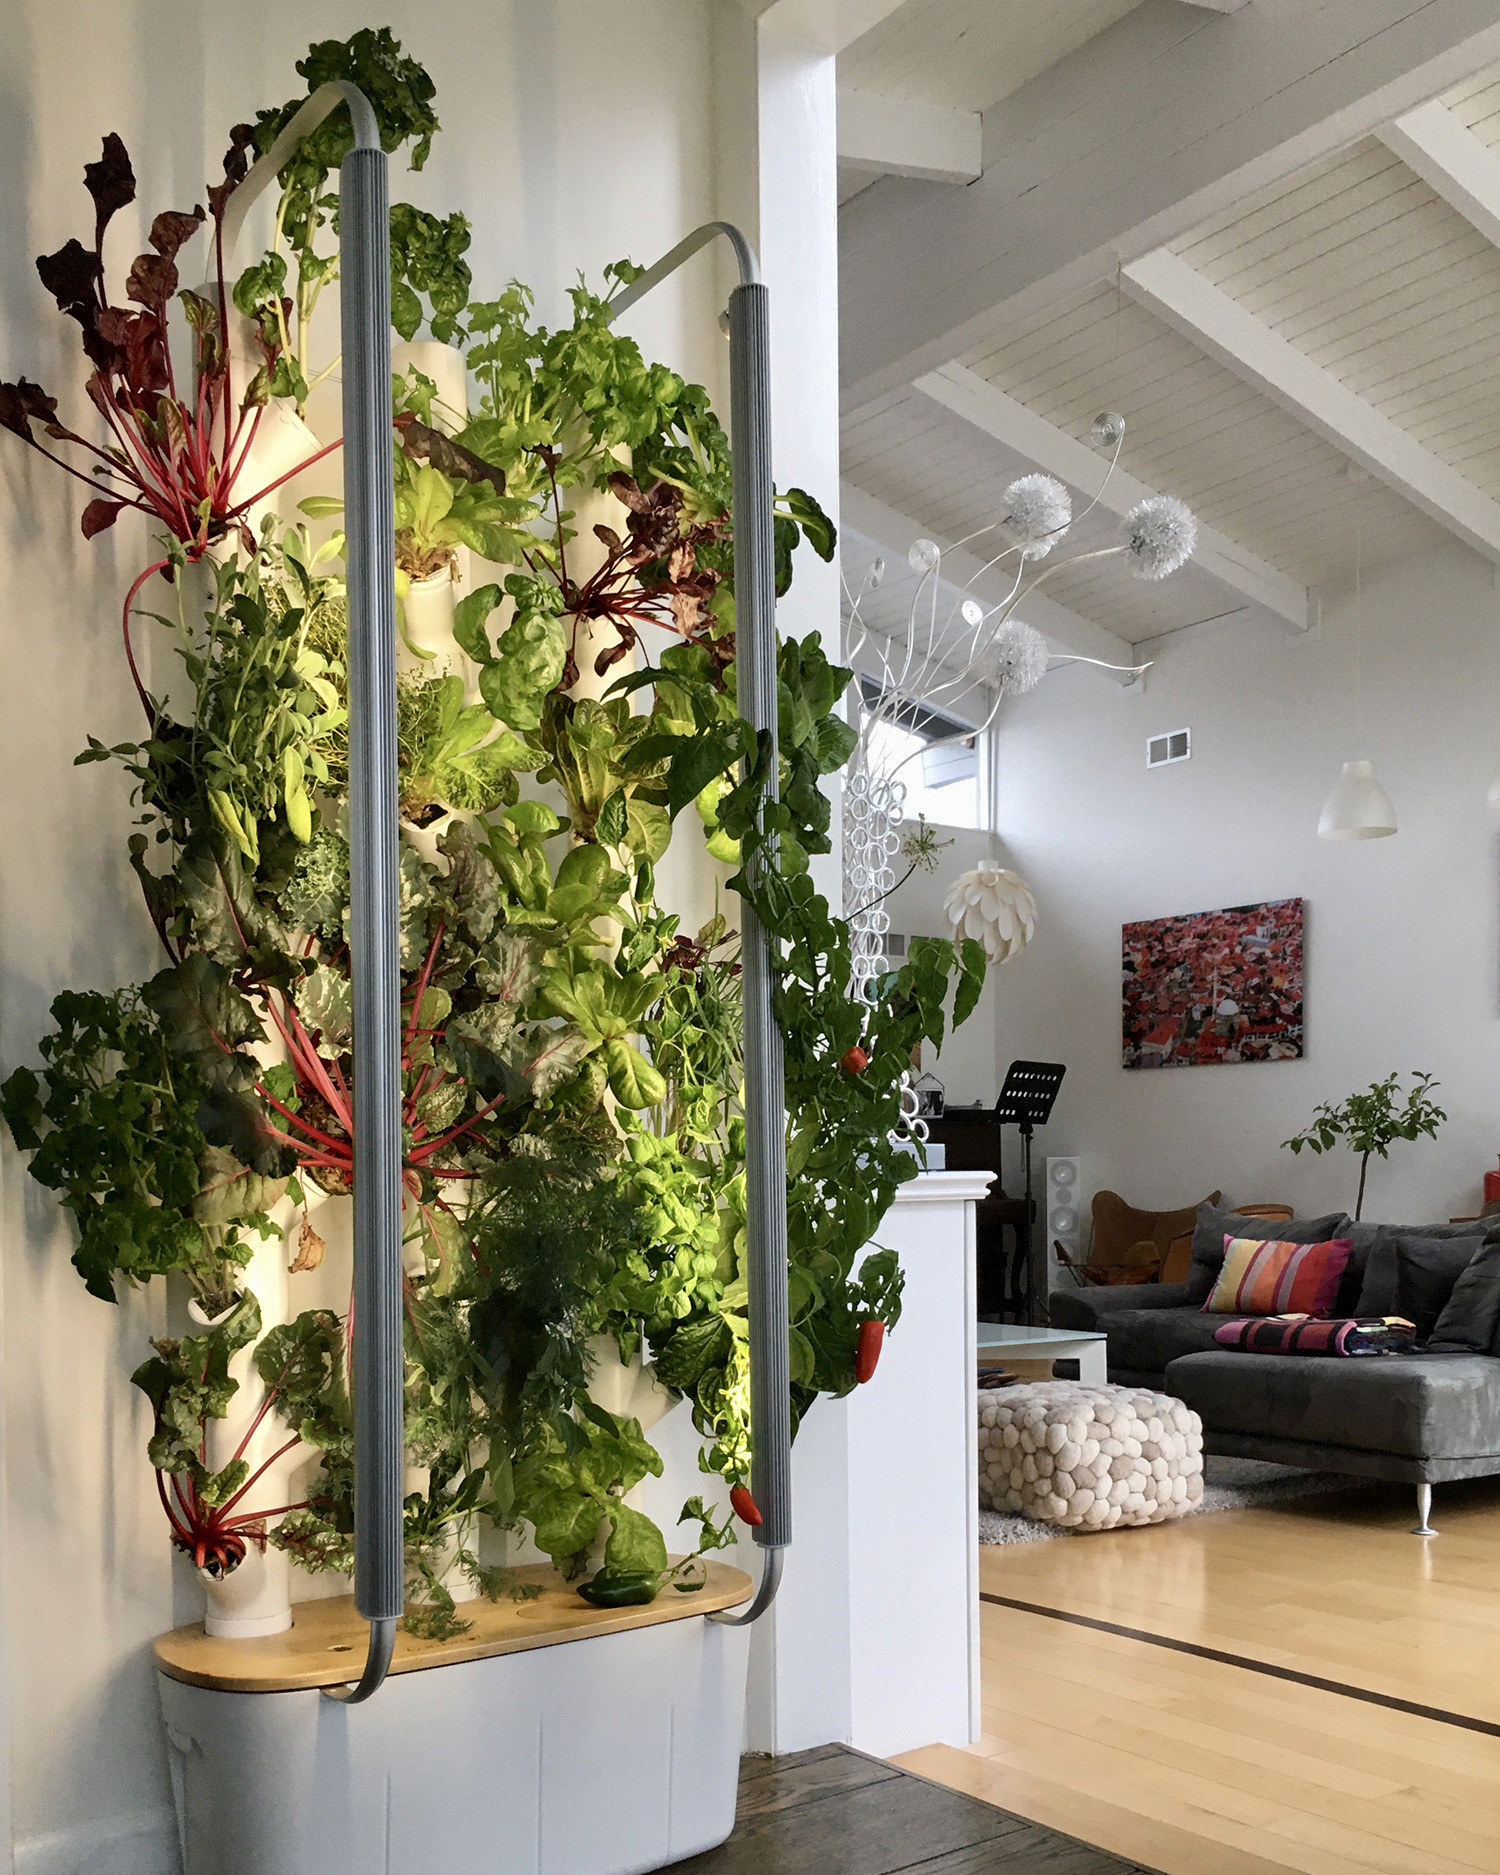 hydroponic device with herbs growing up bars